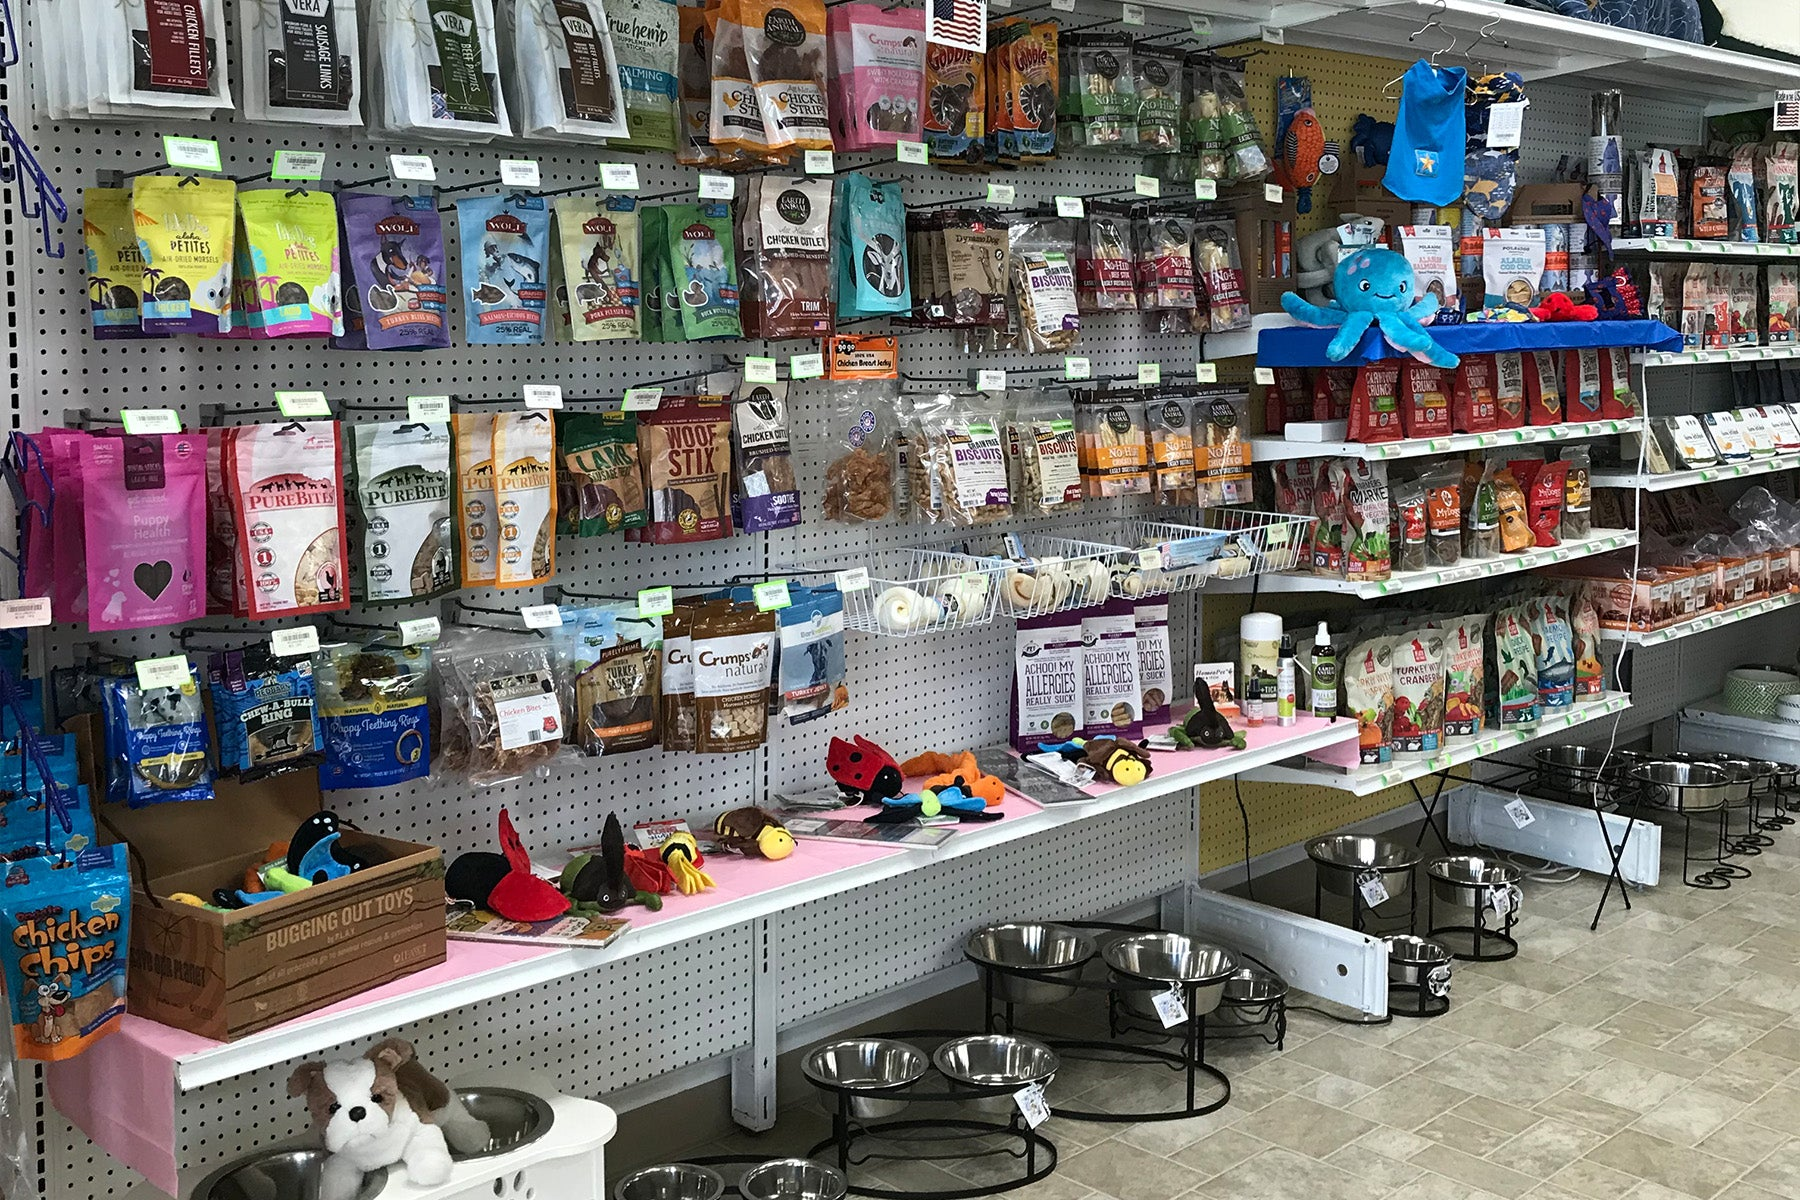 Store shelf with dog treats and supplies